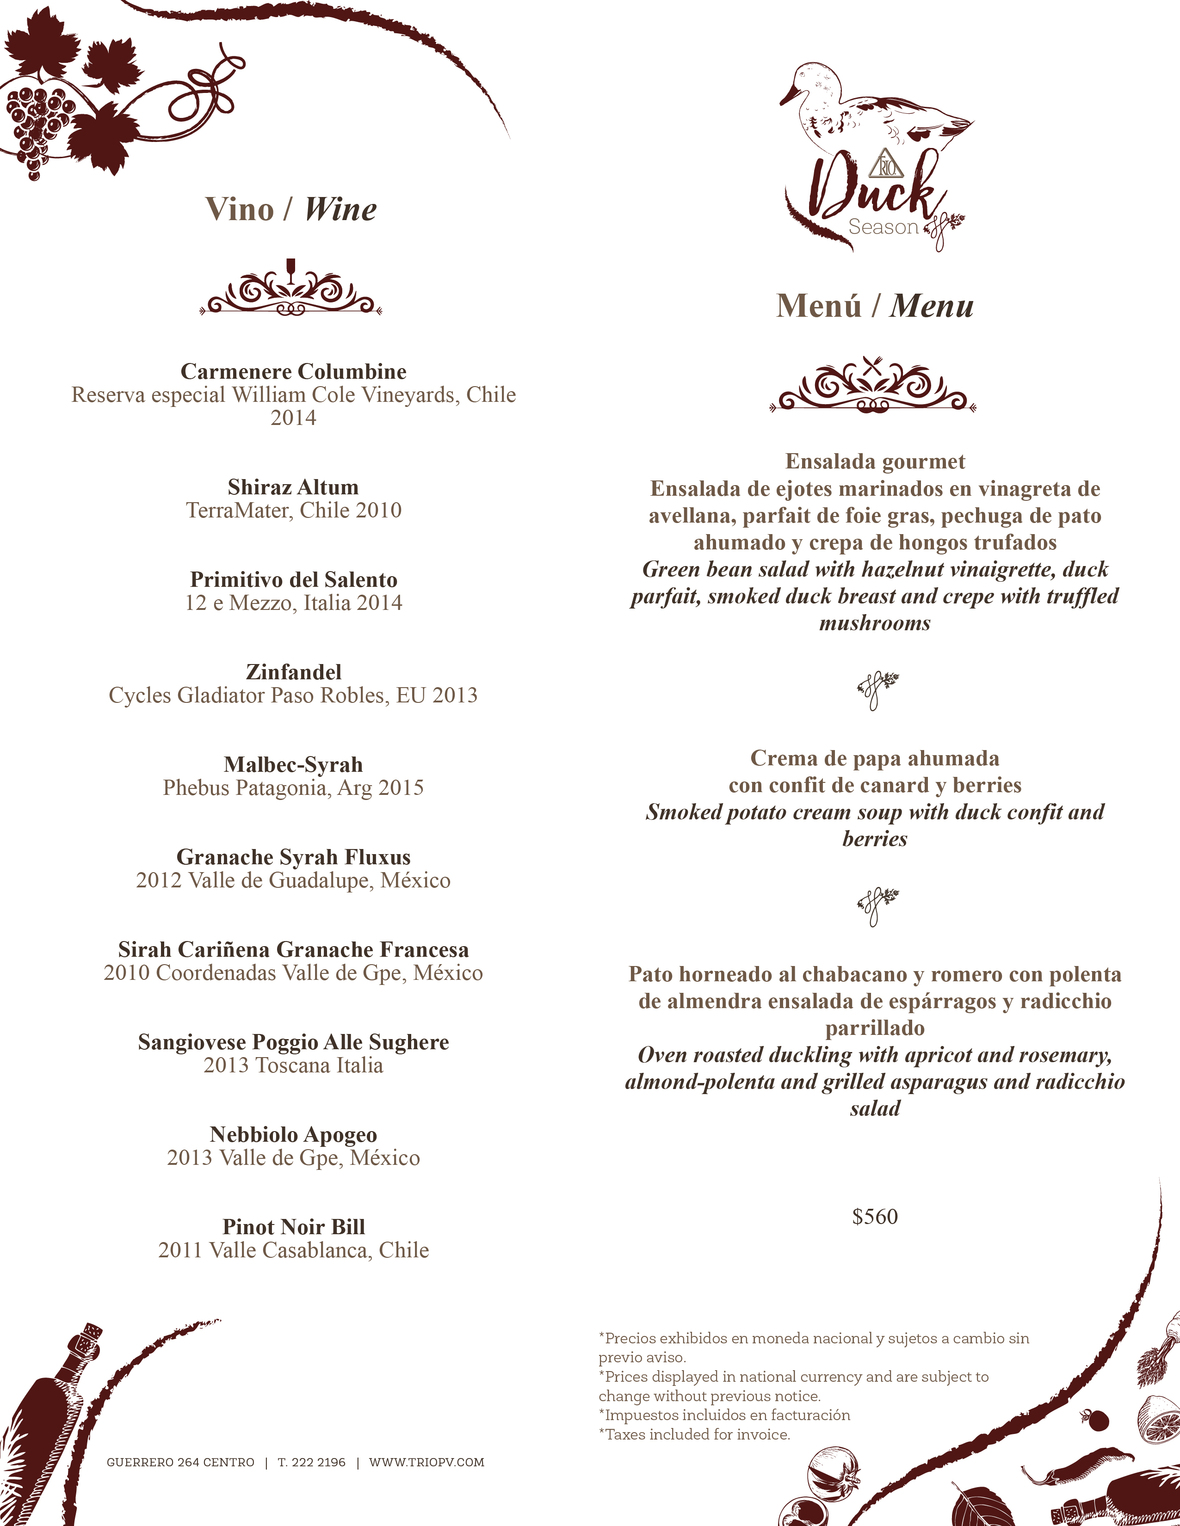 Trio Duck Season Menu 1